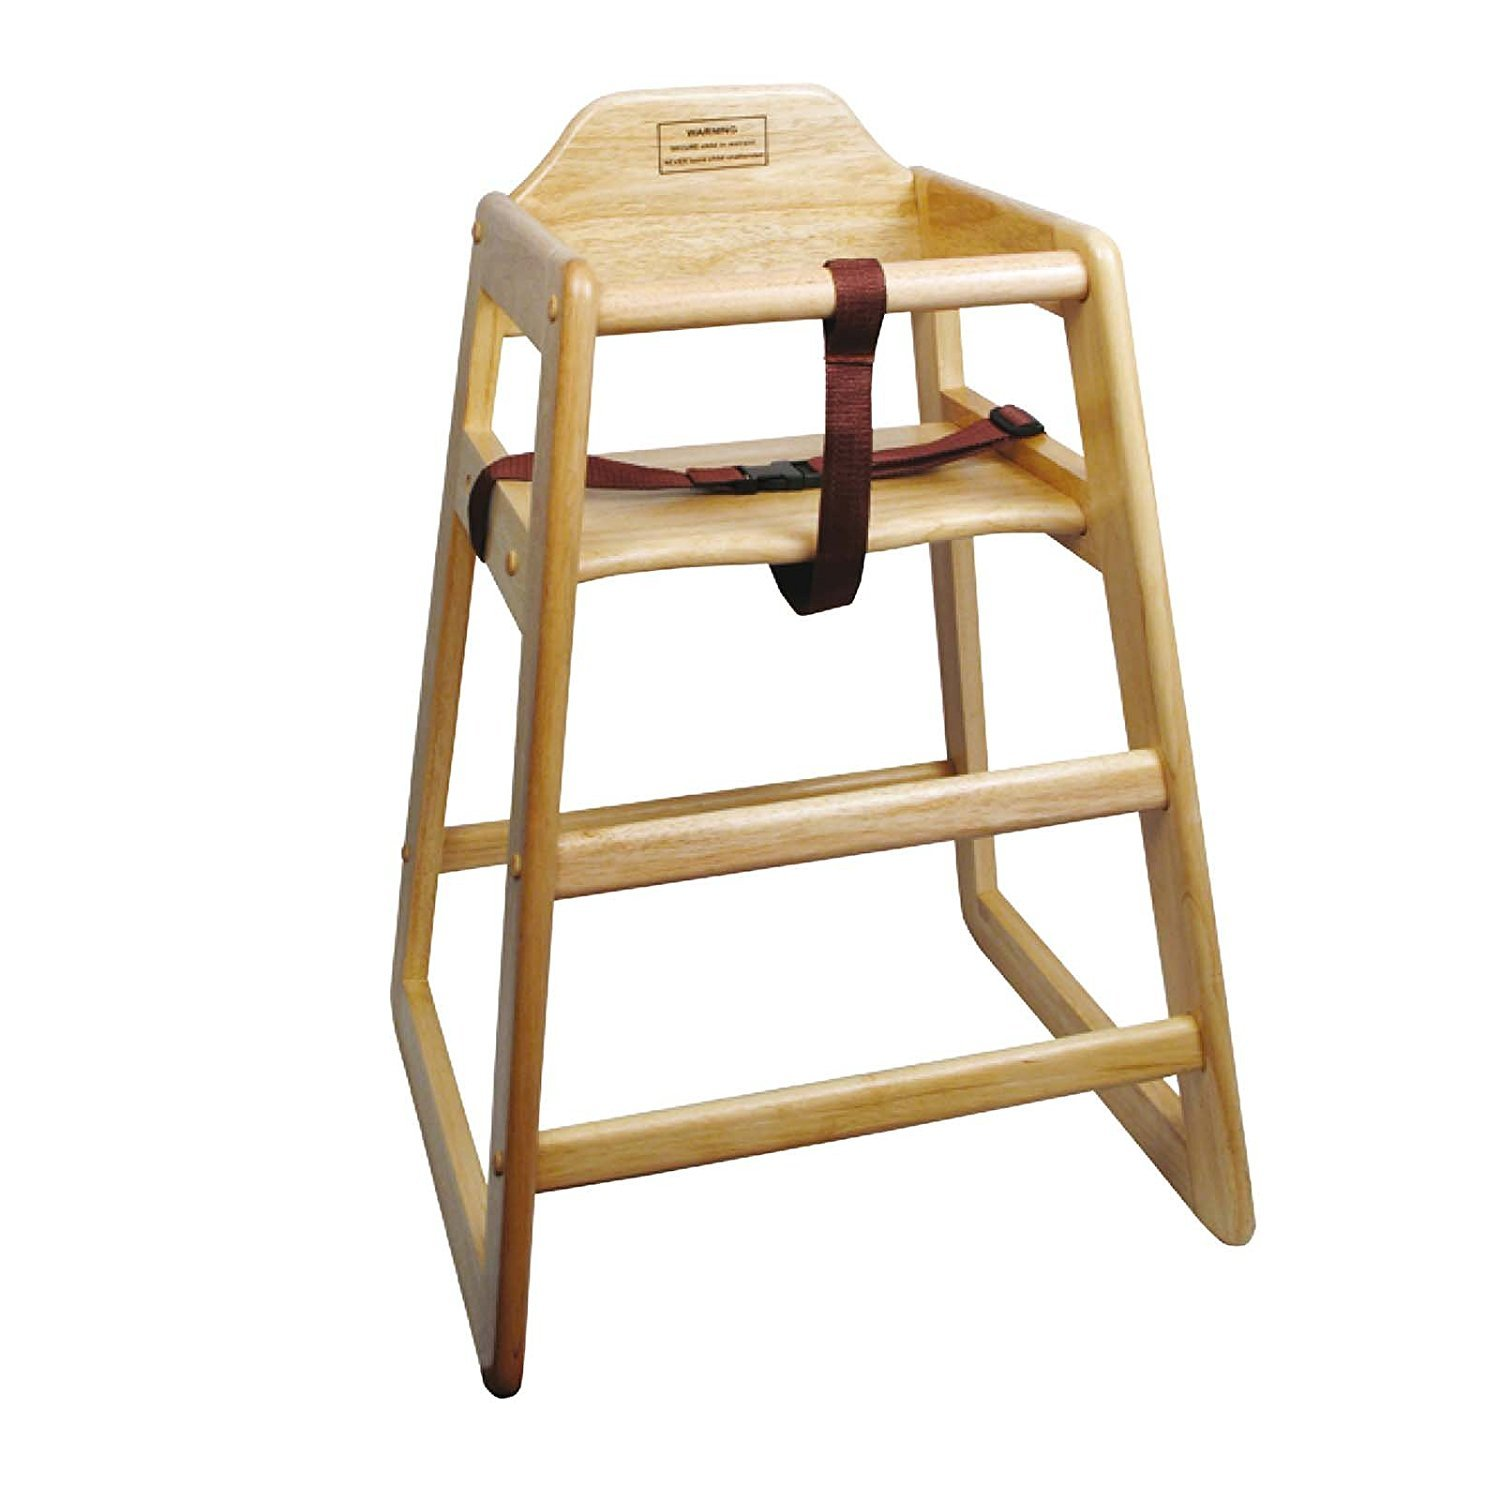 Winco CHH-101 Unassembled Wooden High Chair, Natural (Set of 2)